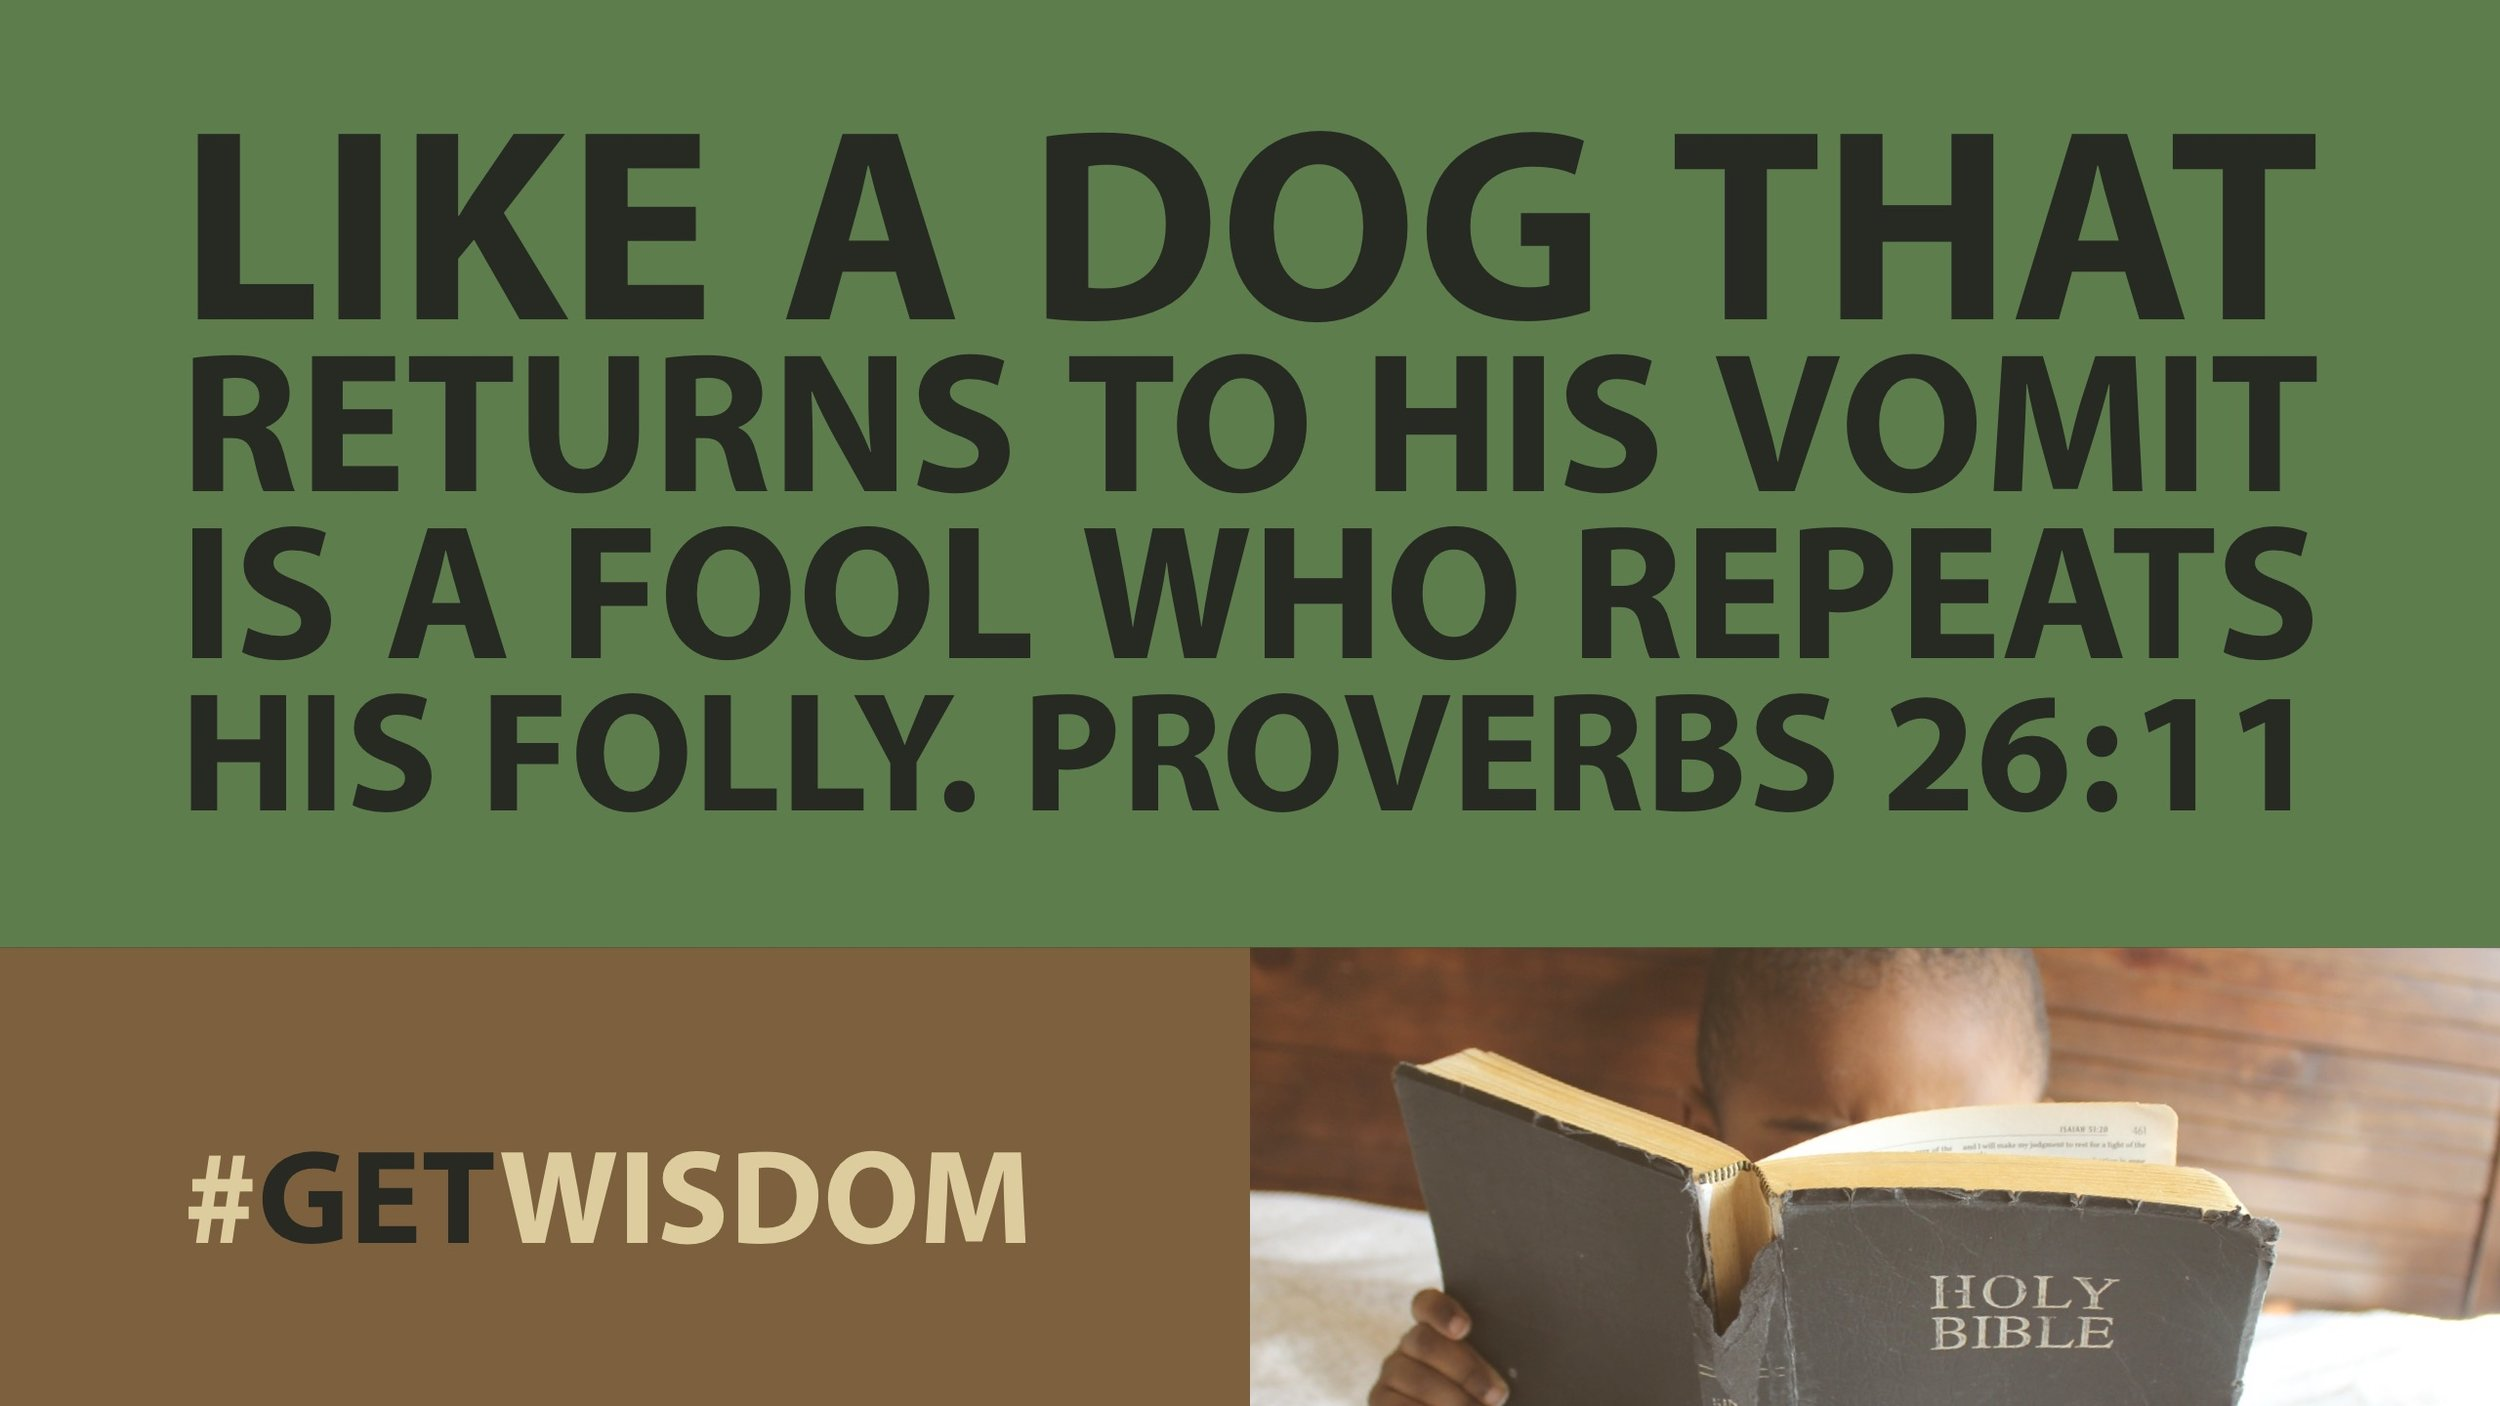 #GetWisdom 026. Don't Eat Your Own Vomit! That's Good Advice. Proclaim Ministries, Get Wisdom #getwisdom, Proverbs 31 Days of Wisdom Mister Brown Bible Teaching Teaching on Proverbs